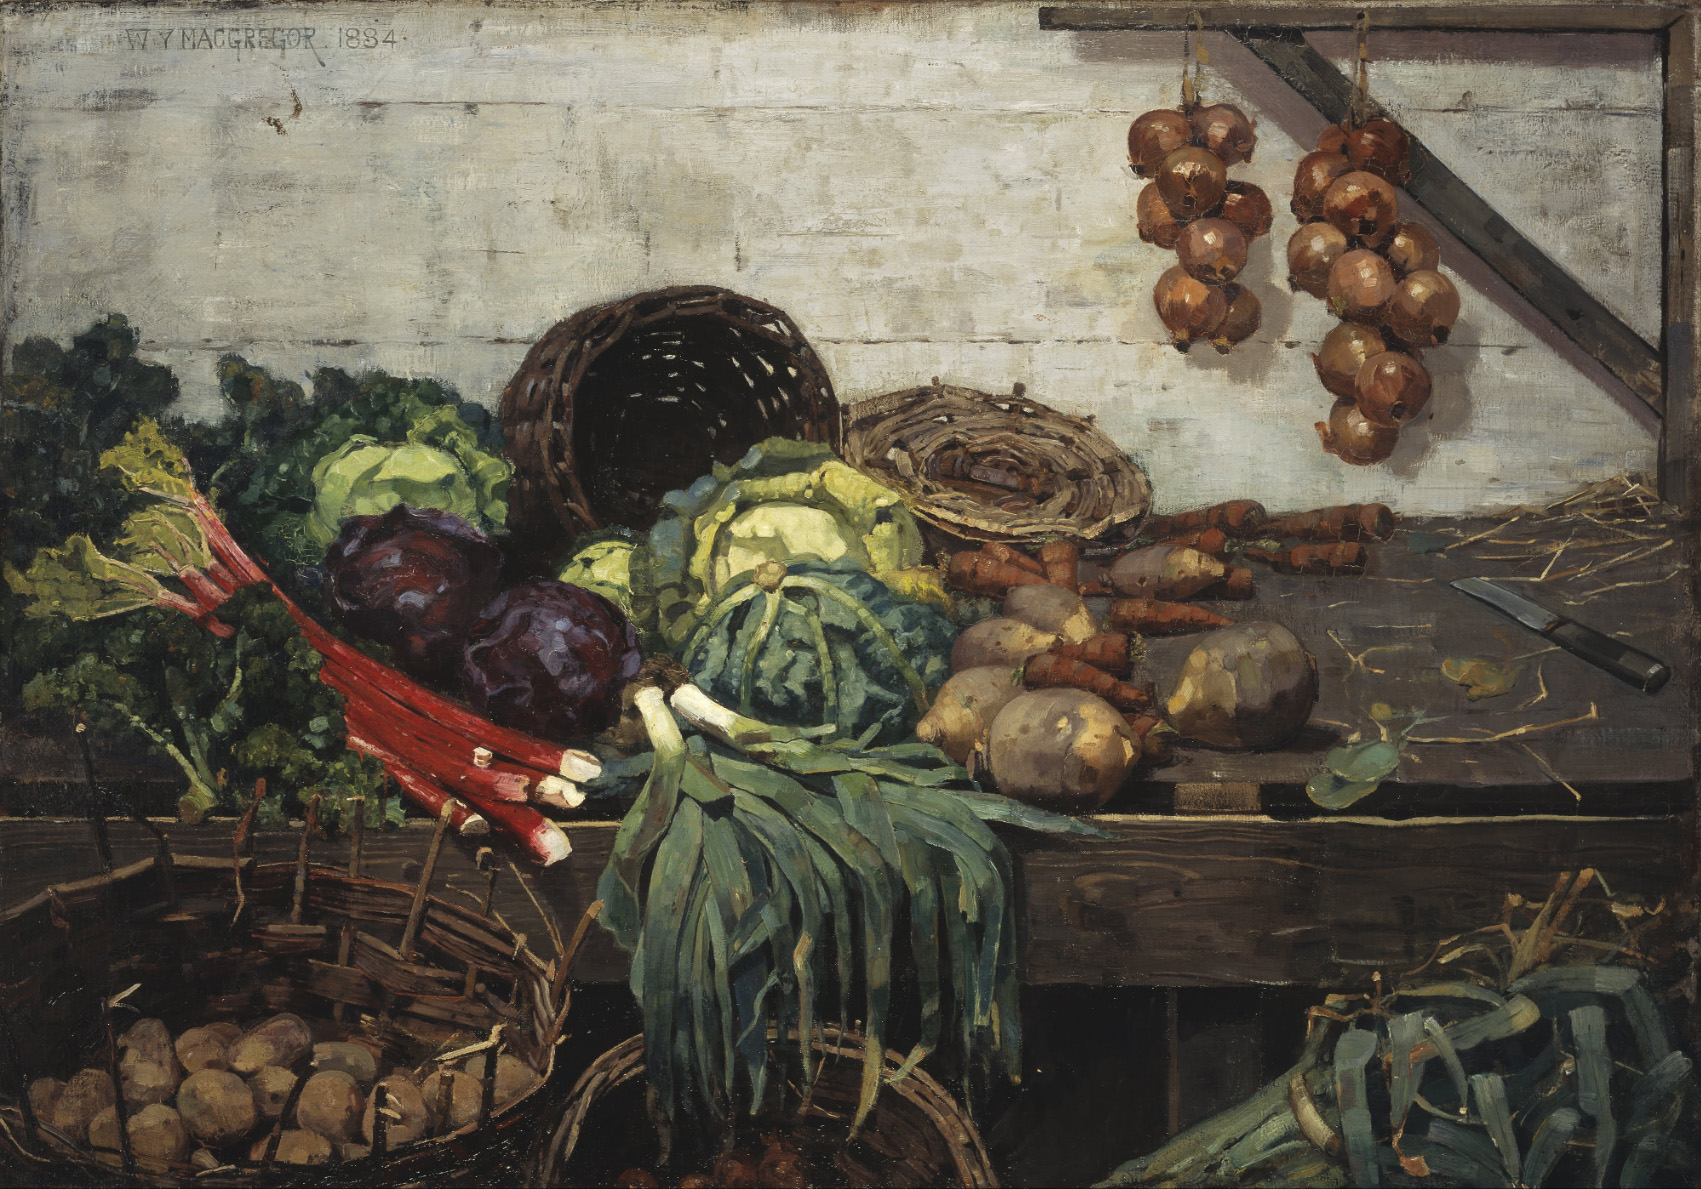 The Vegetable Stall, William York MacGregor